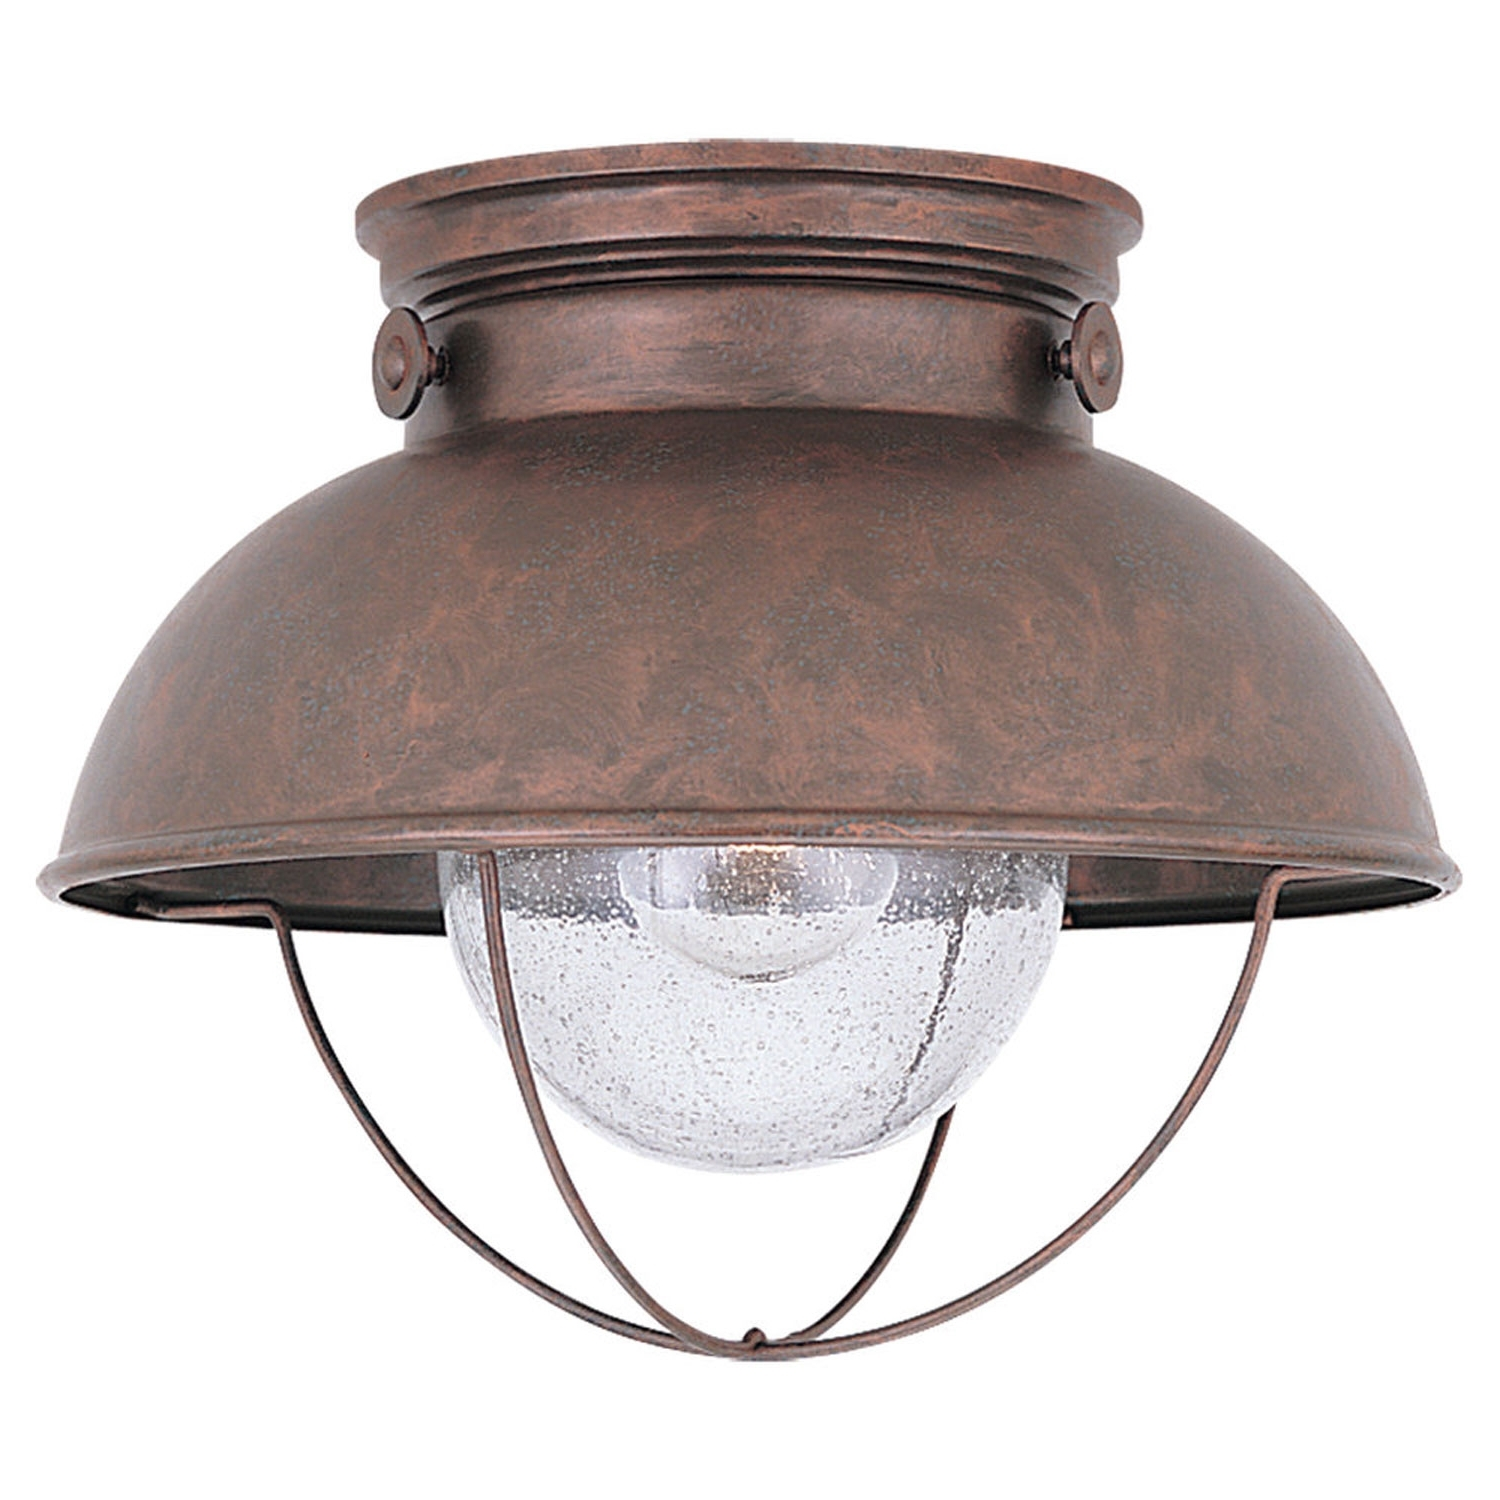 Outdoor Ceiling Lighting (View 10 of 20)